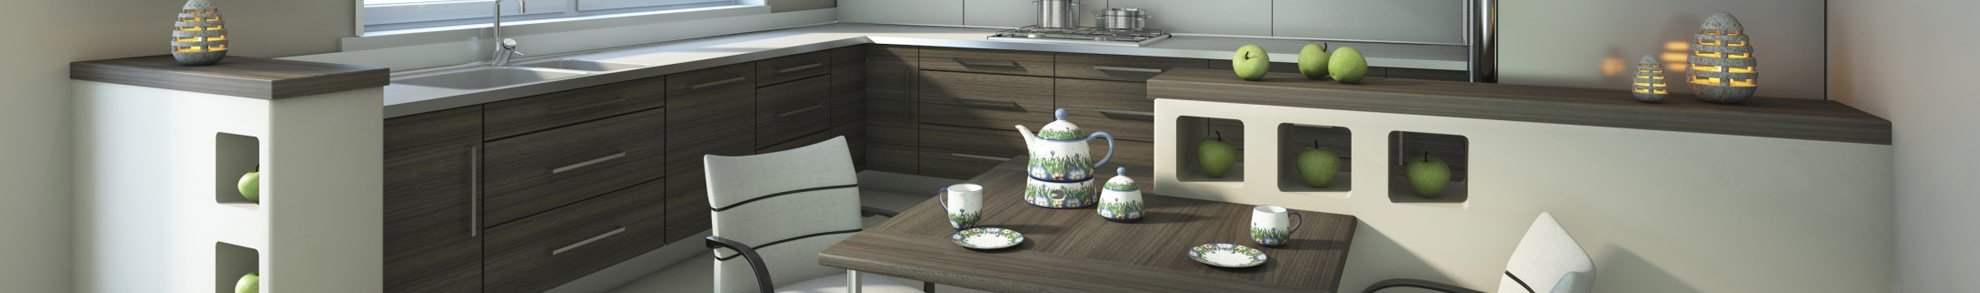 M & M Kitchens & Joinery hero cad design